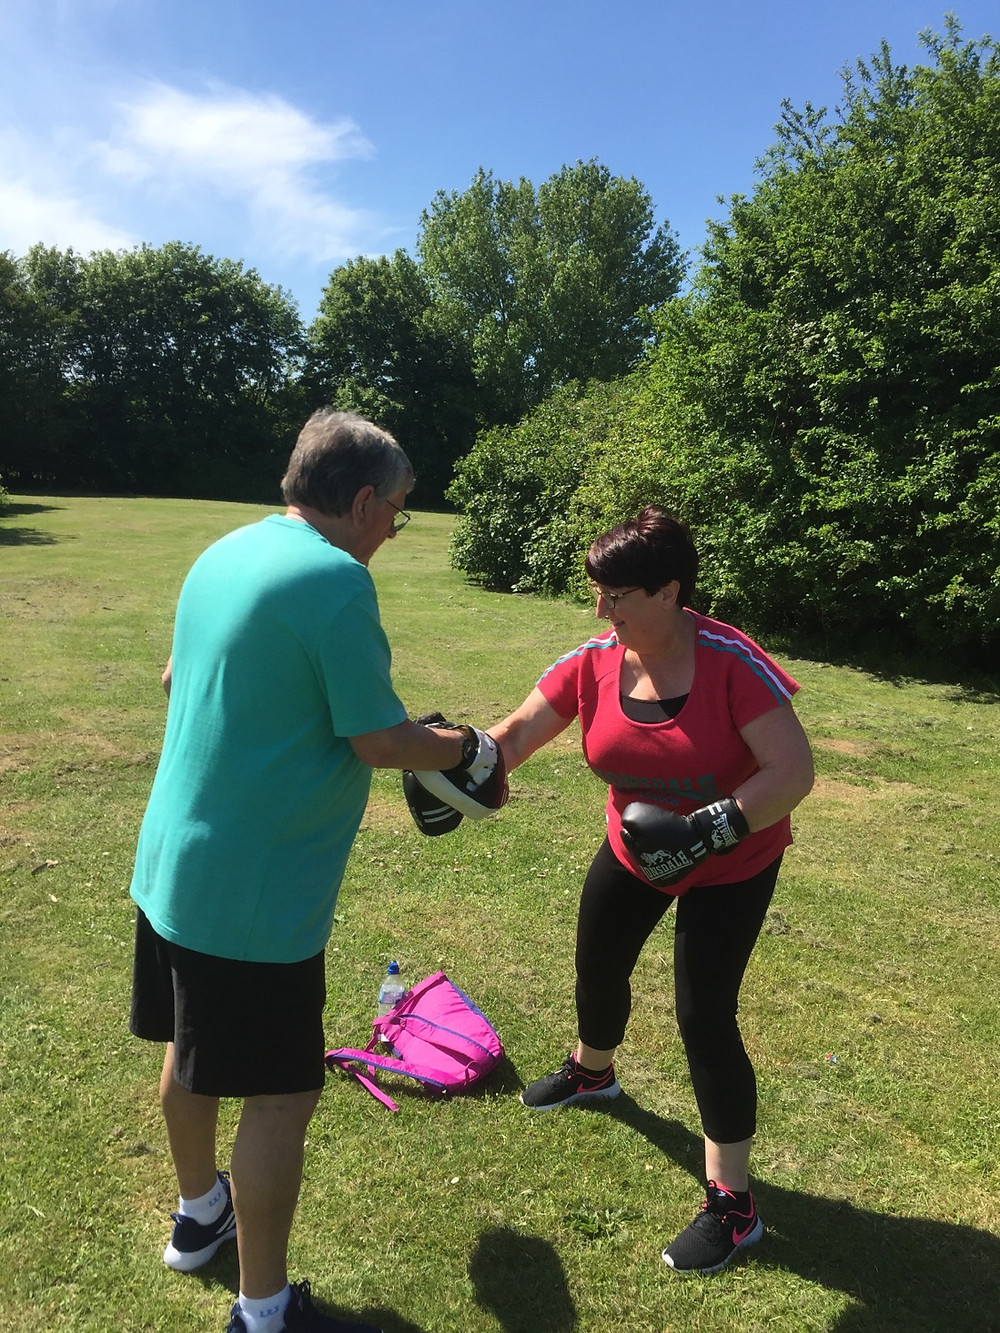 sparring, boxing, boxercise in the park